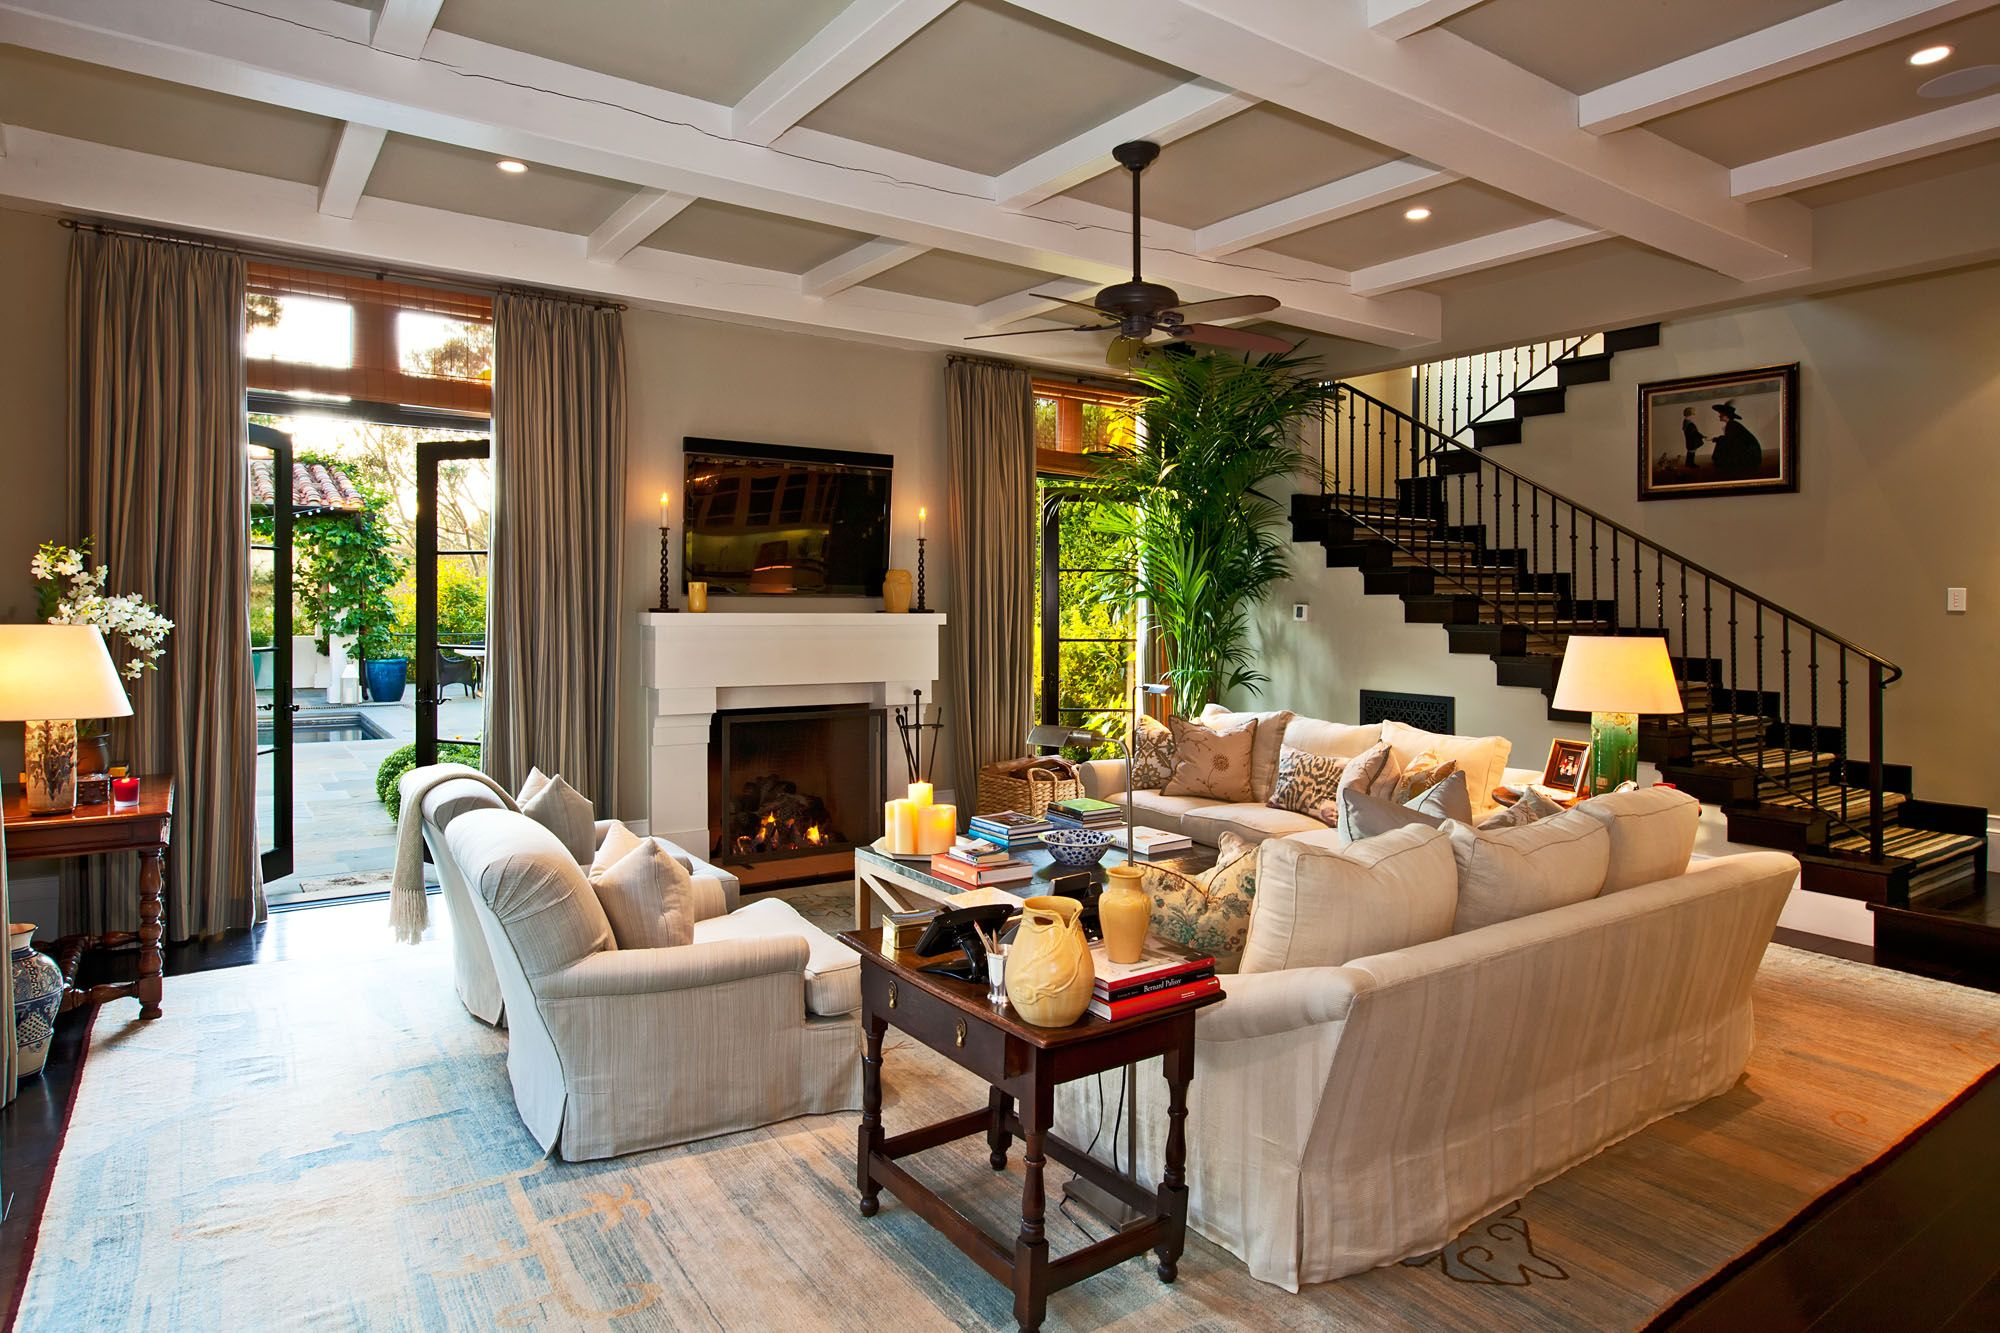 Living Room Decorating Ideas on a Bud they painted the beams